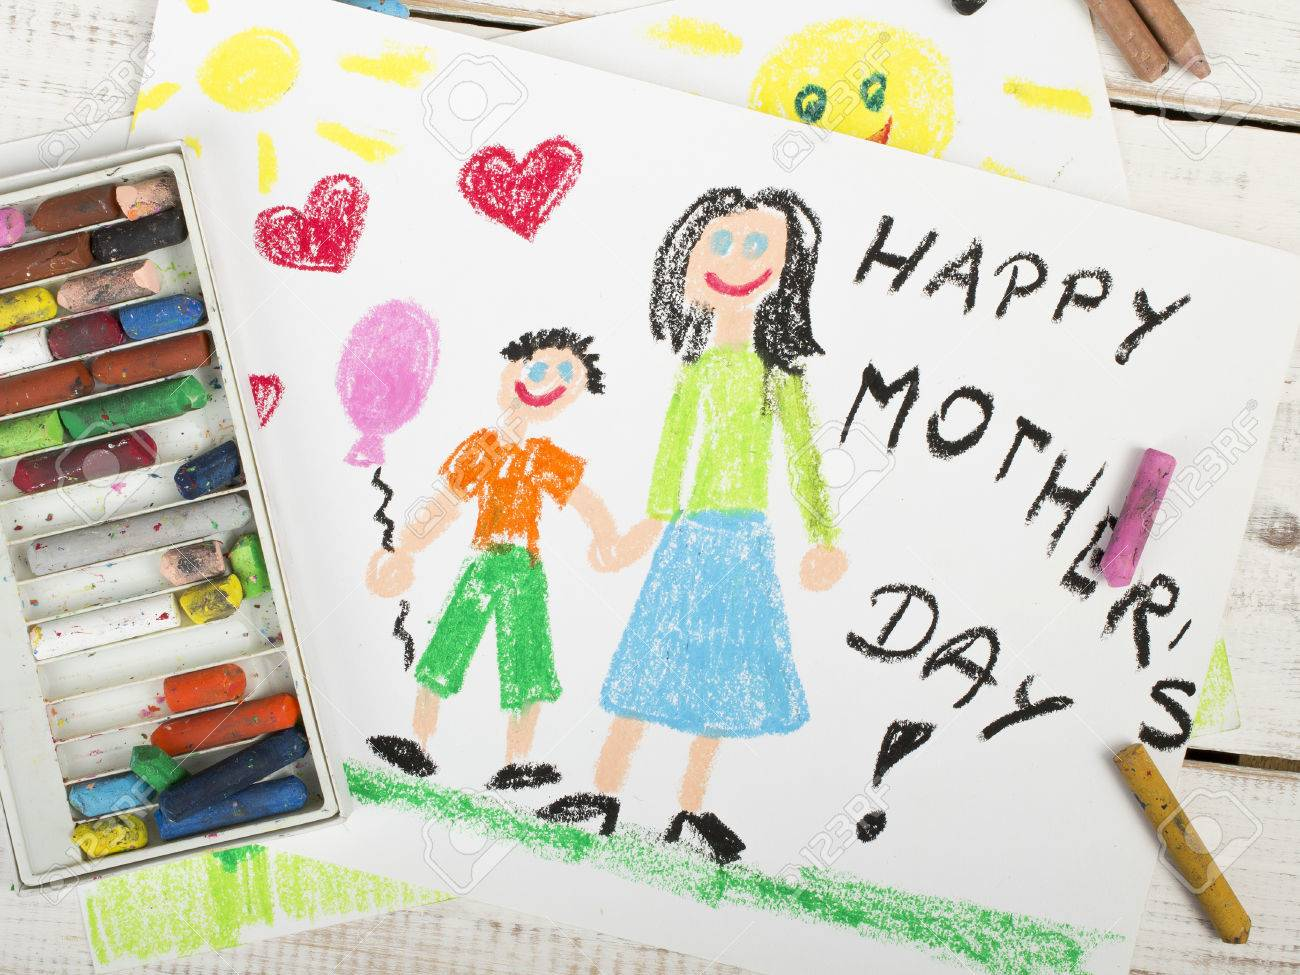 Happy mothers day card made by a child - 40804860